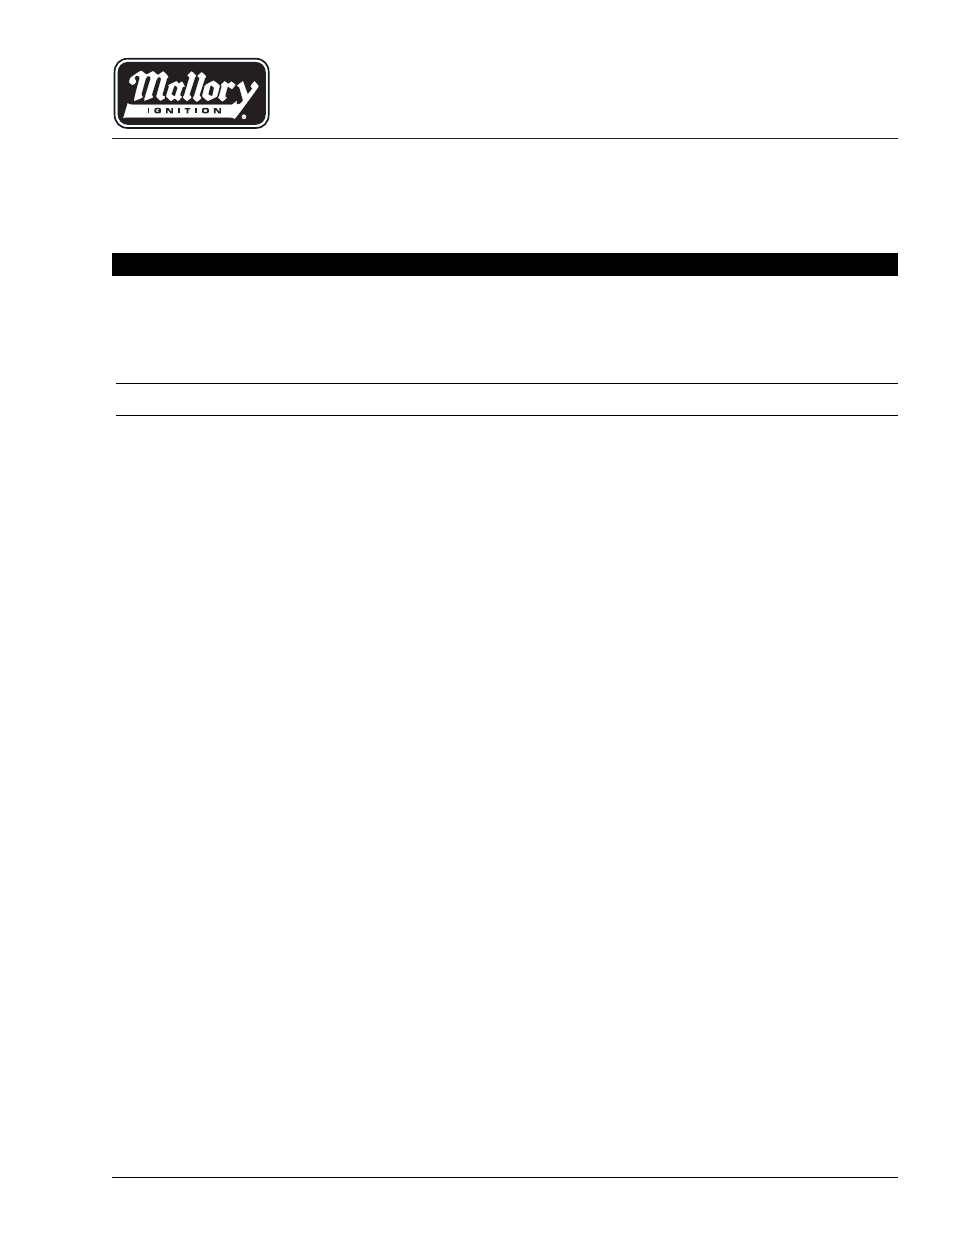 mallory unilite ballast resistor wiring diagram wiring diagram Mallory Unilite Ignition Wiring Diagram mallory ignition mallory unilite distributor user manual 13 pagesmallory ignition mallory unilite distributor user manual 13